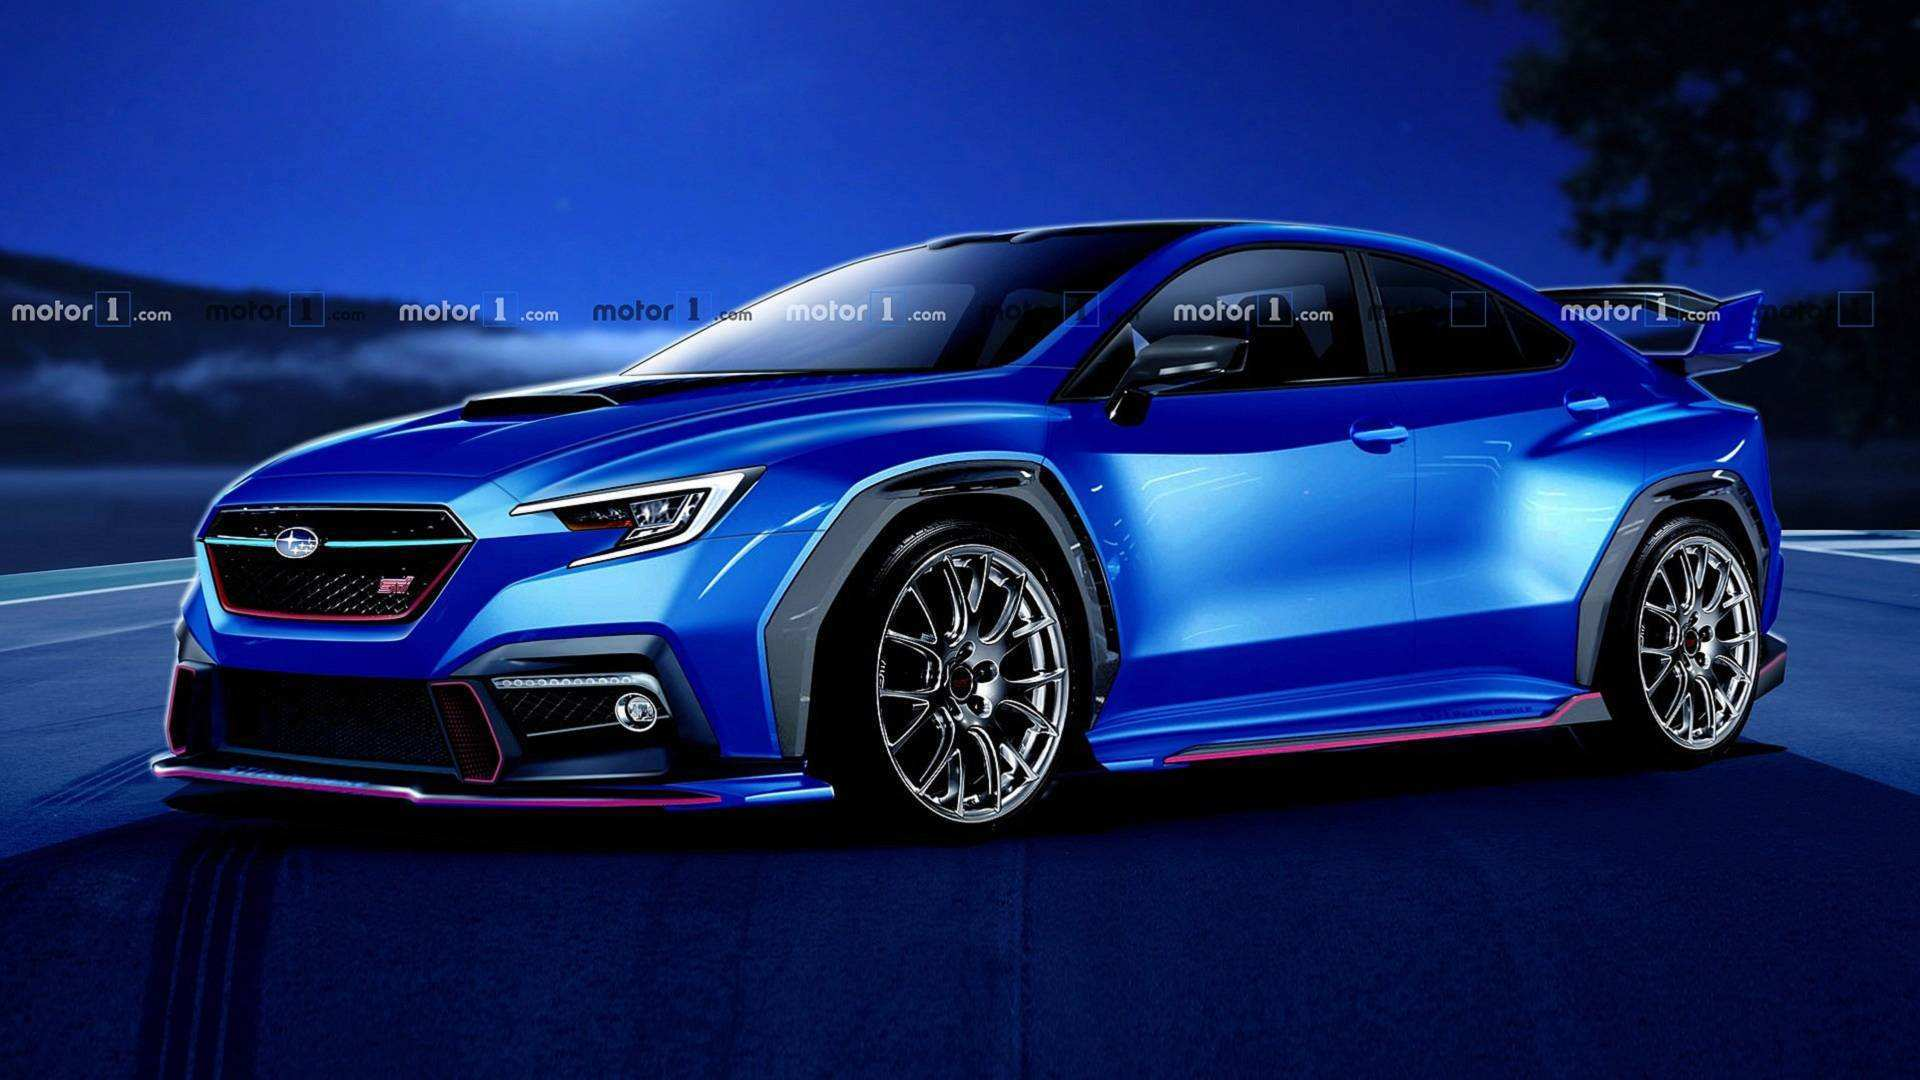 40 Great Subaru Cars 2020 Ratings with Subaru Cars 2020